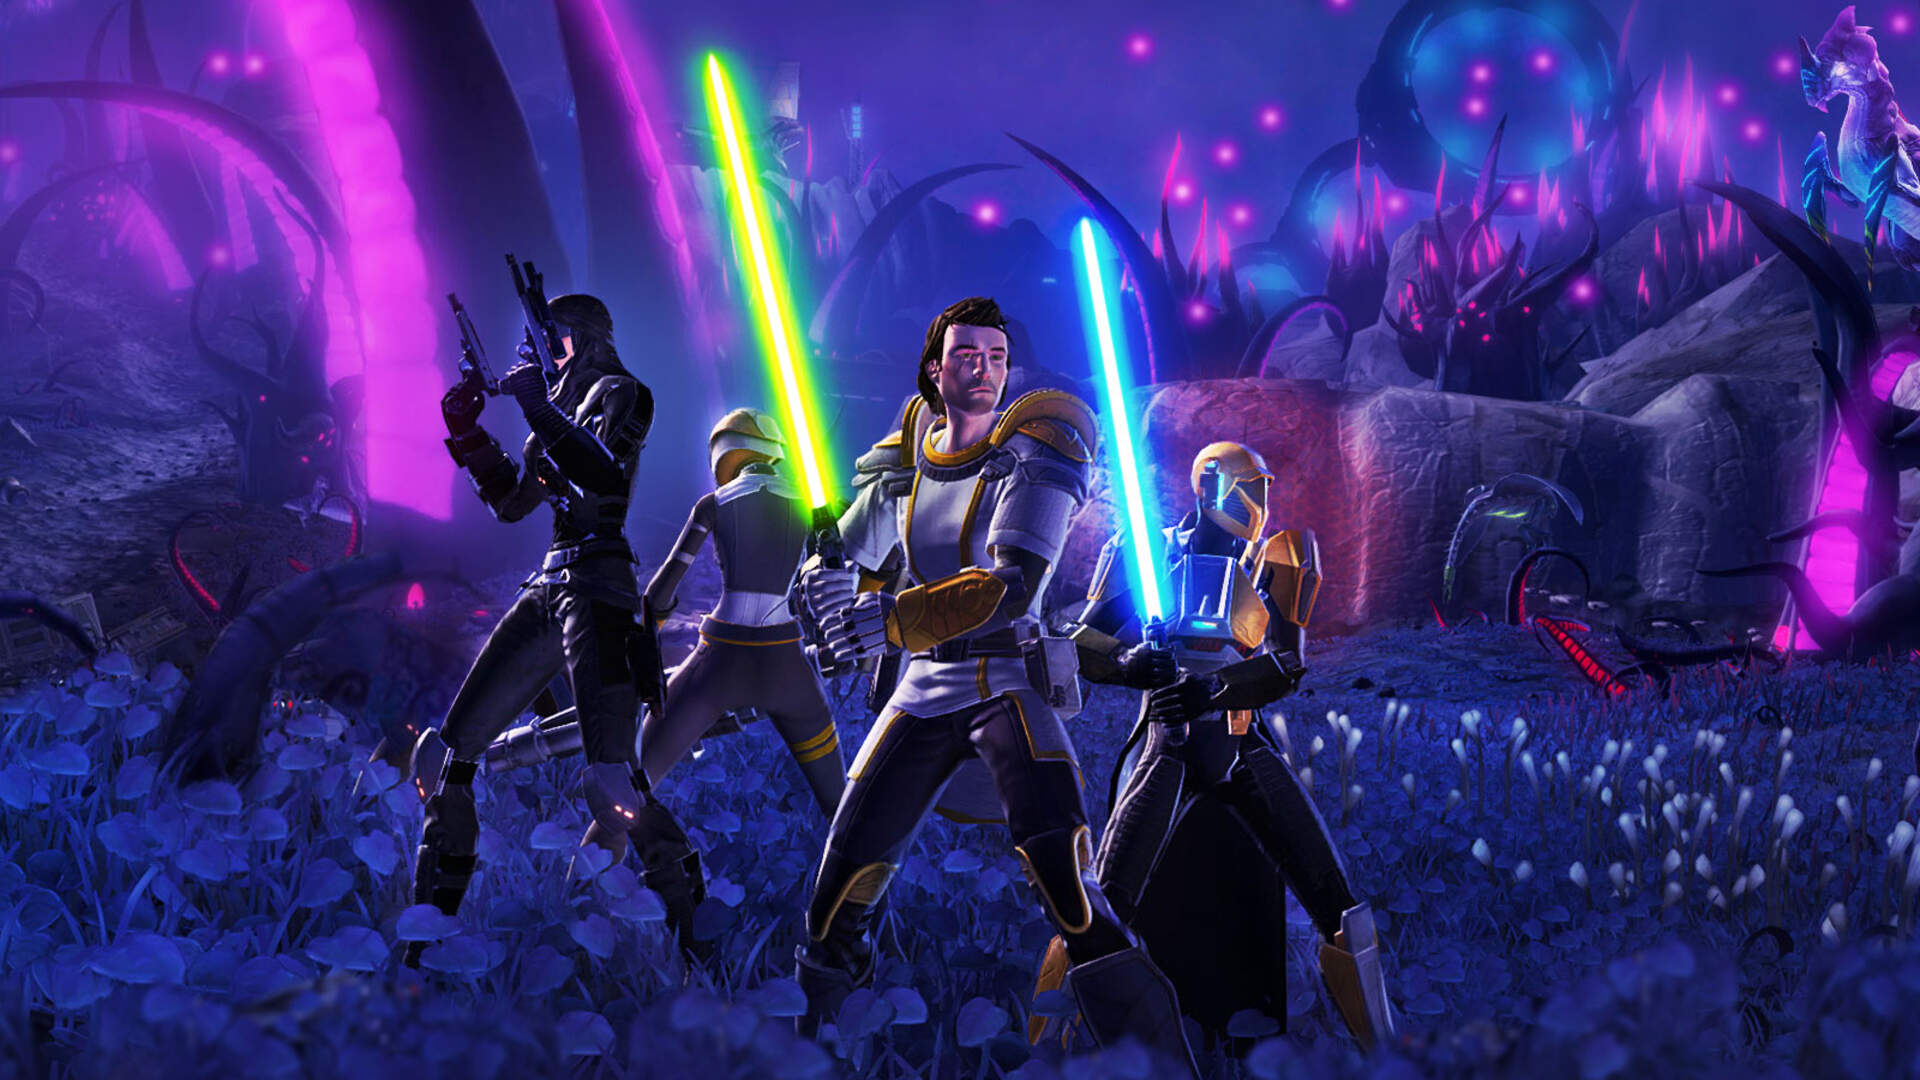 Star Wars: The Old Republic Hits Steam With Crossplay and Cross-Save